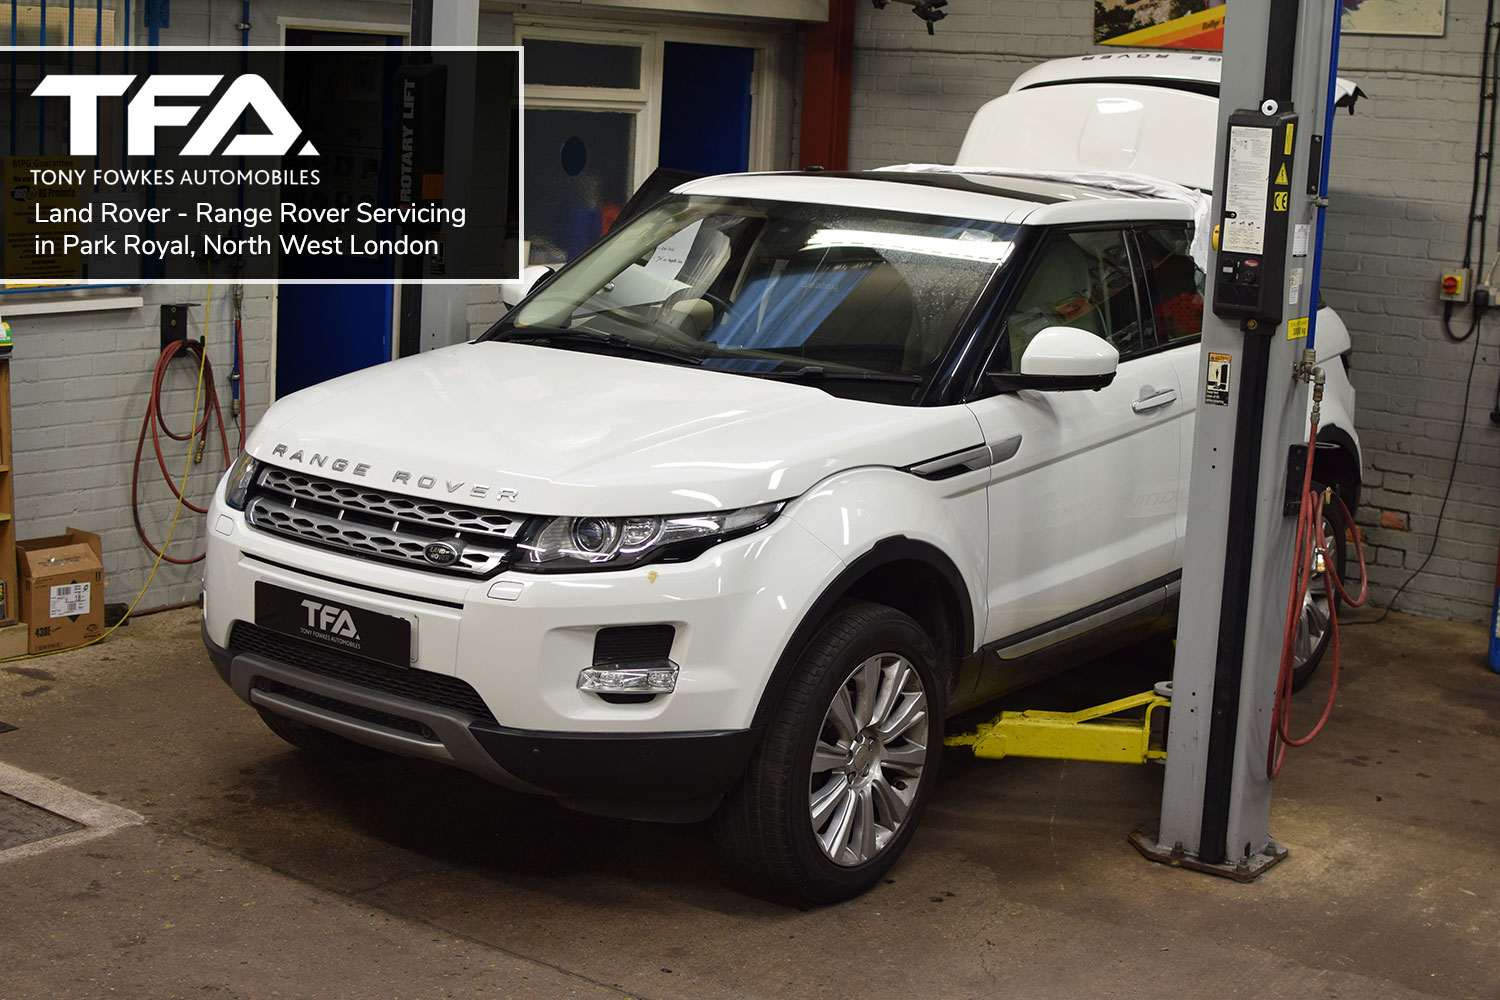 Land Rover Servicing in Park Royal, North West London